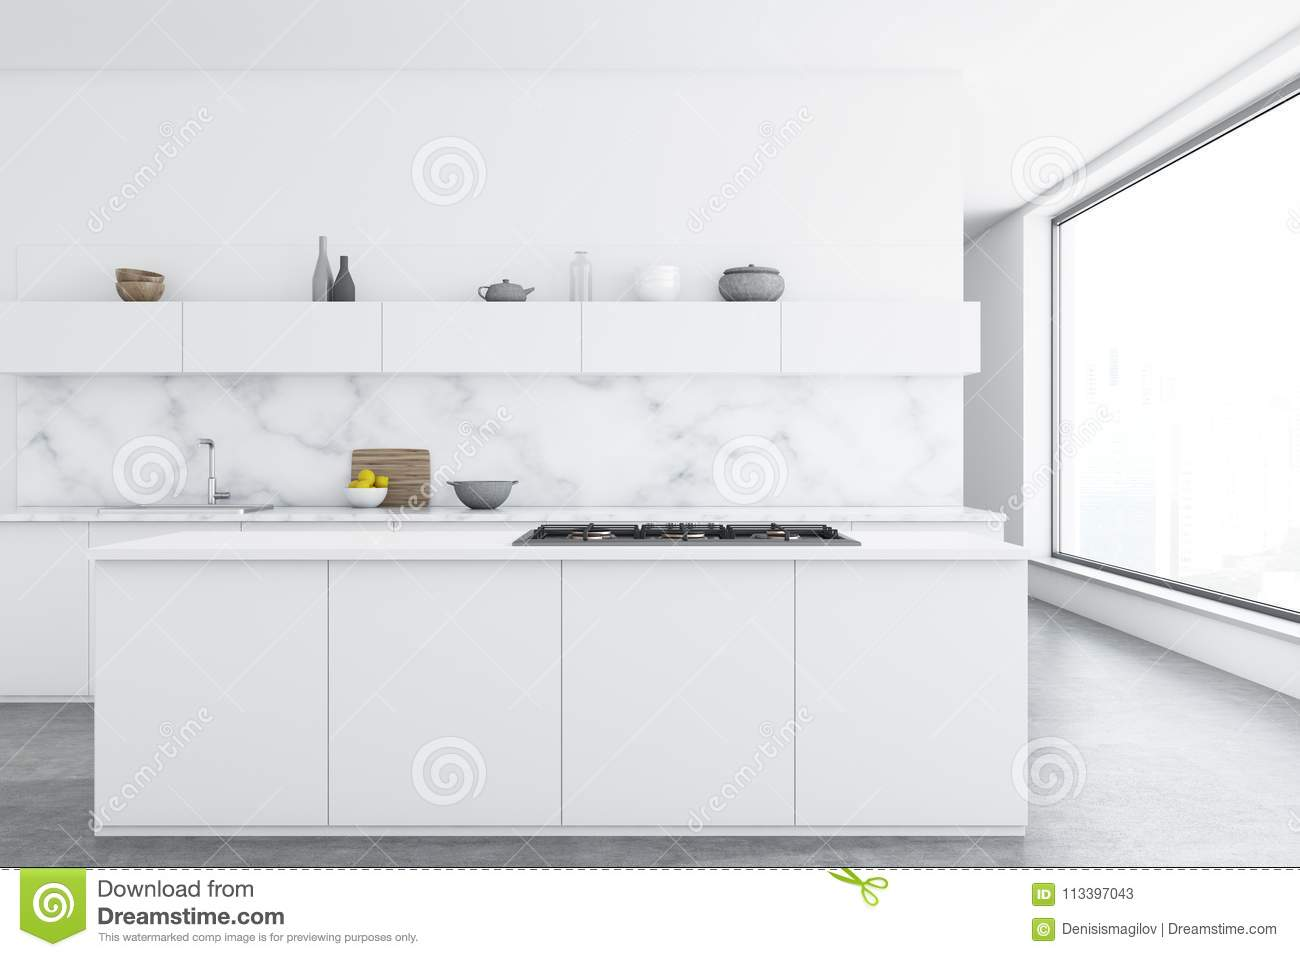 counters white countertop go be countertops along with granite re for sophisticated can ilhabella look your choices right if kitchen the to cabinets a top choice articles seeking you